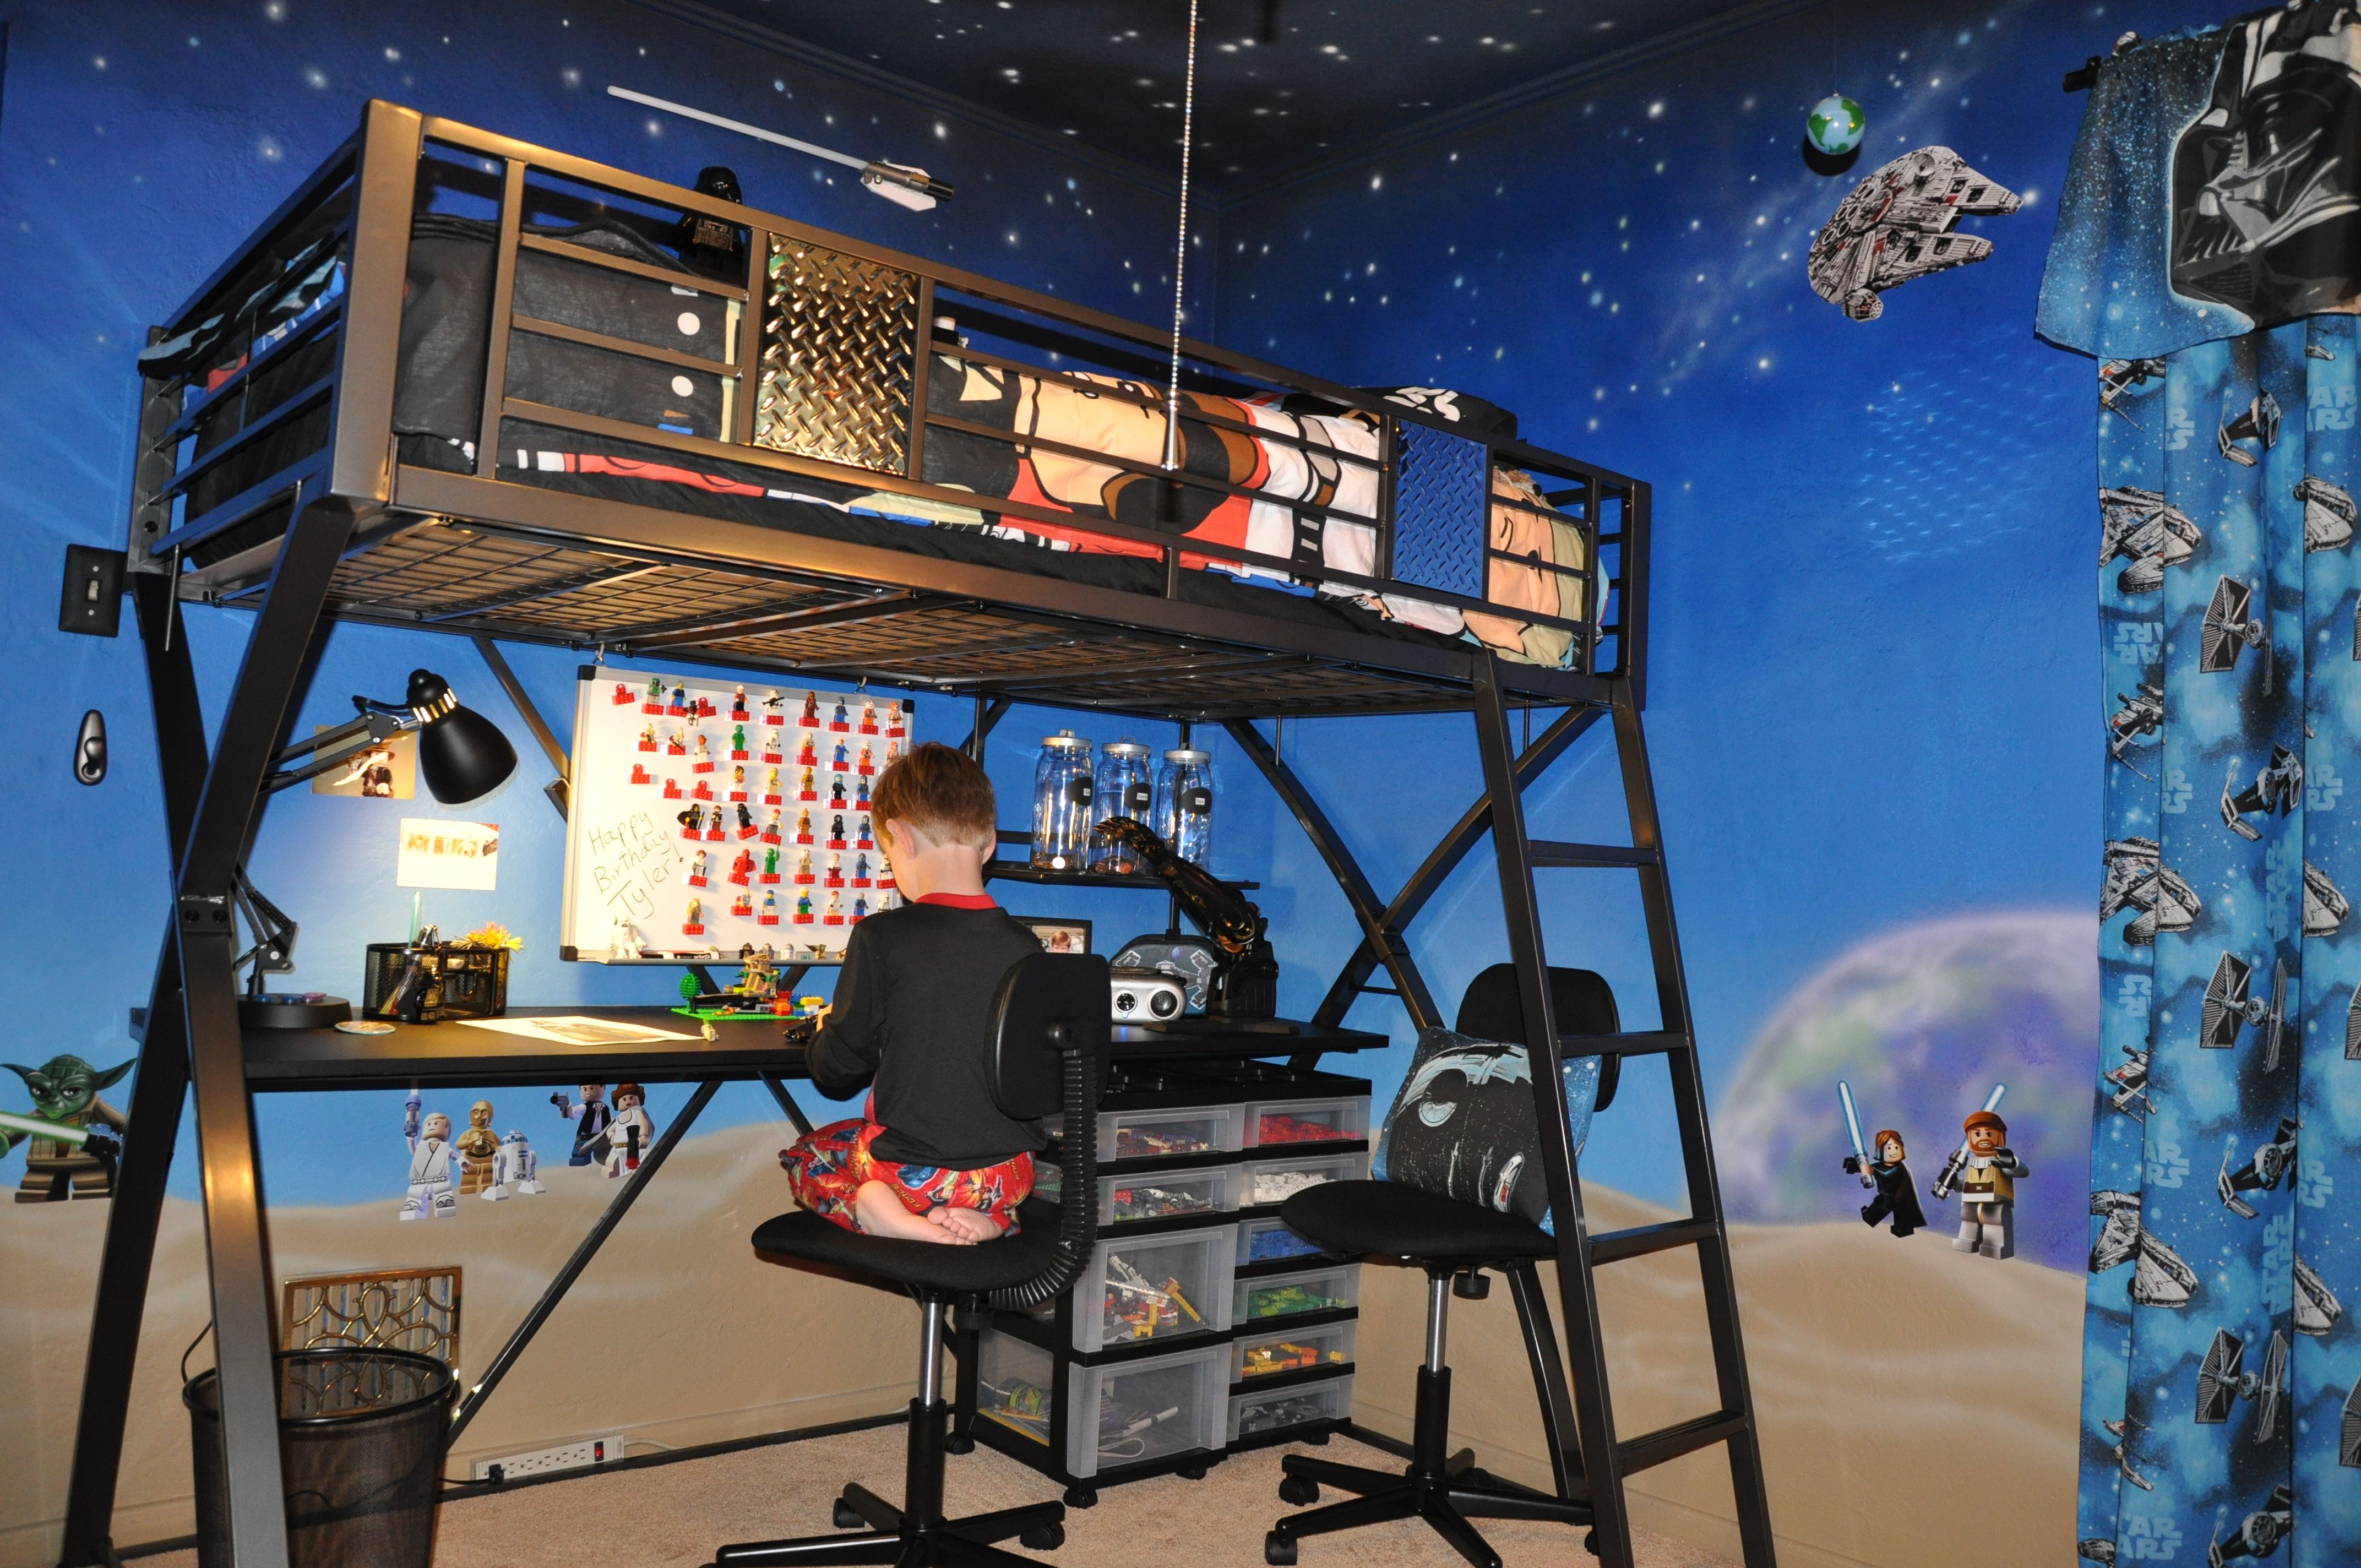 Room 2 Build Bedroom Kids Lego: Star Wars Room, Star